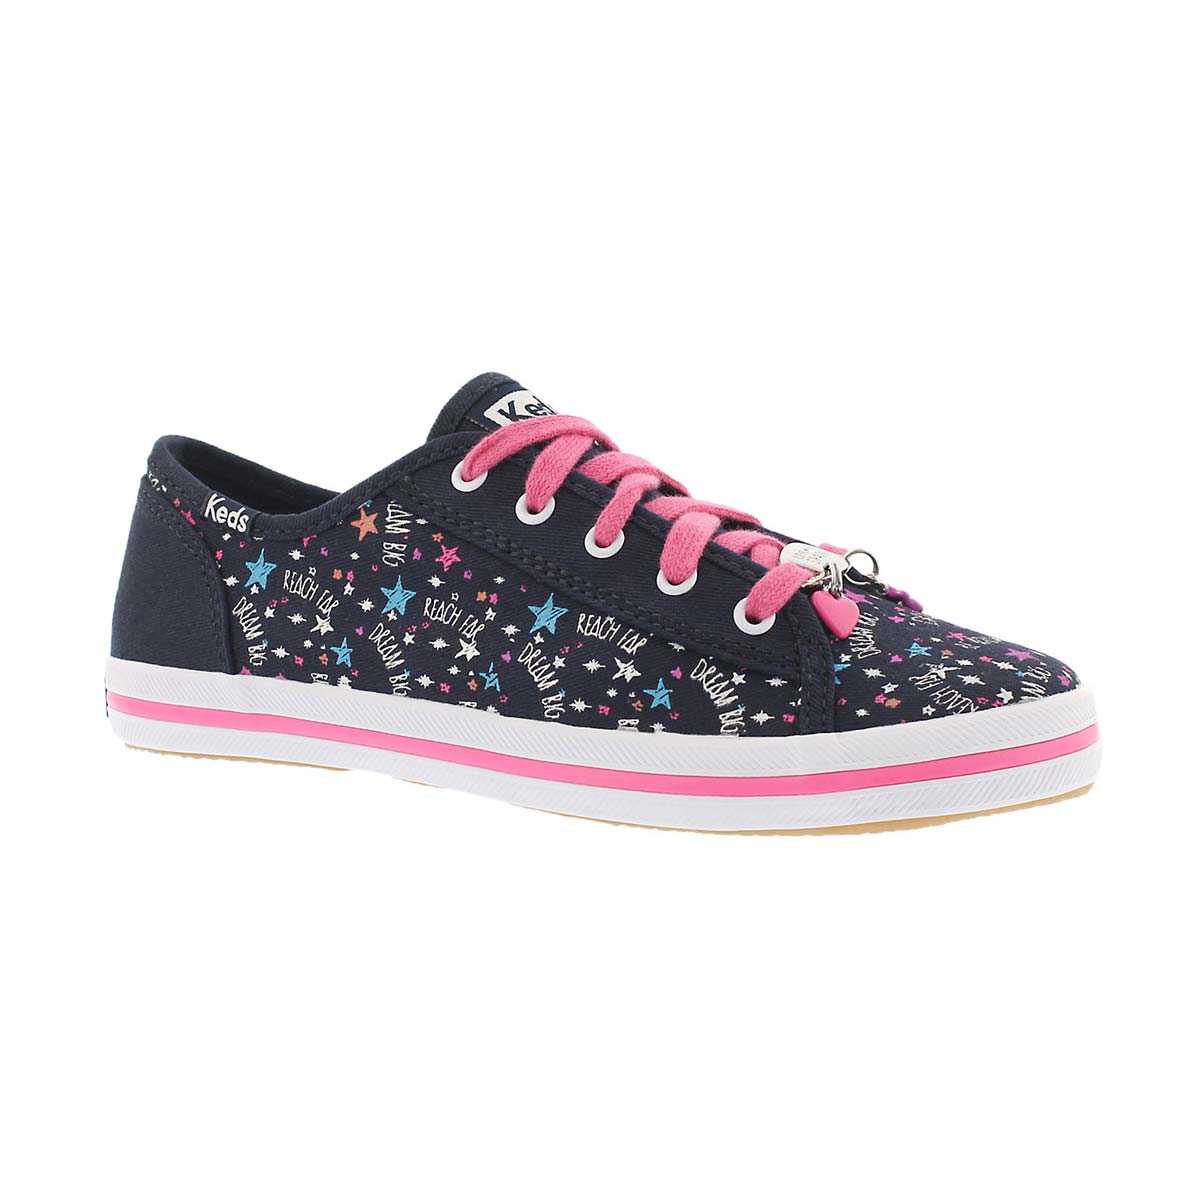 Girls' KICKSTART CHARM navy/pink sneakers